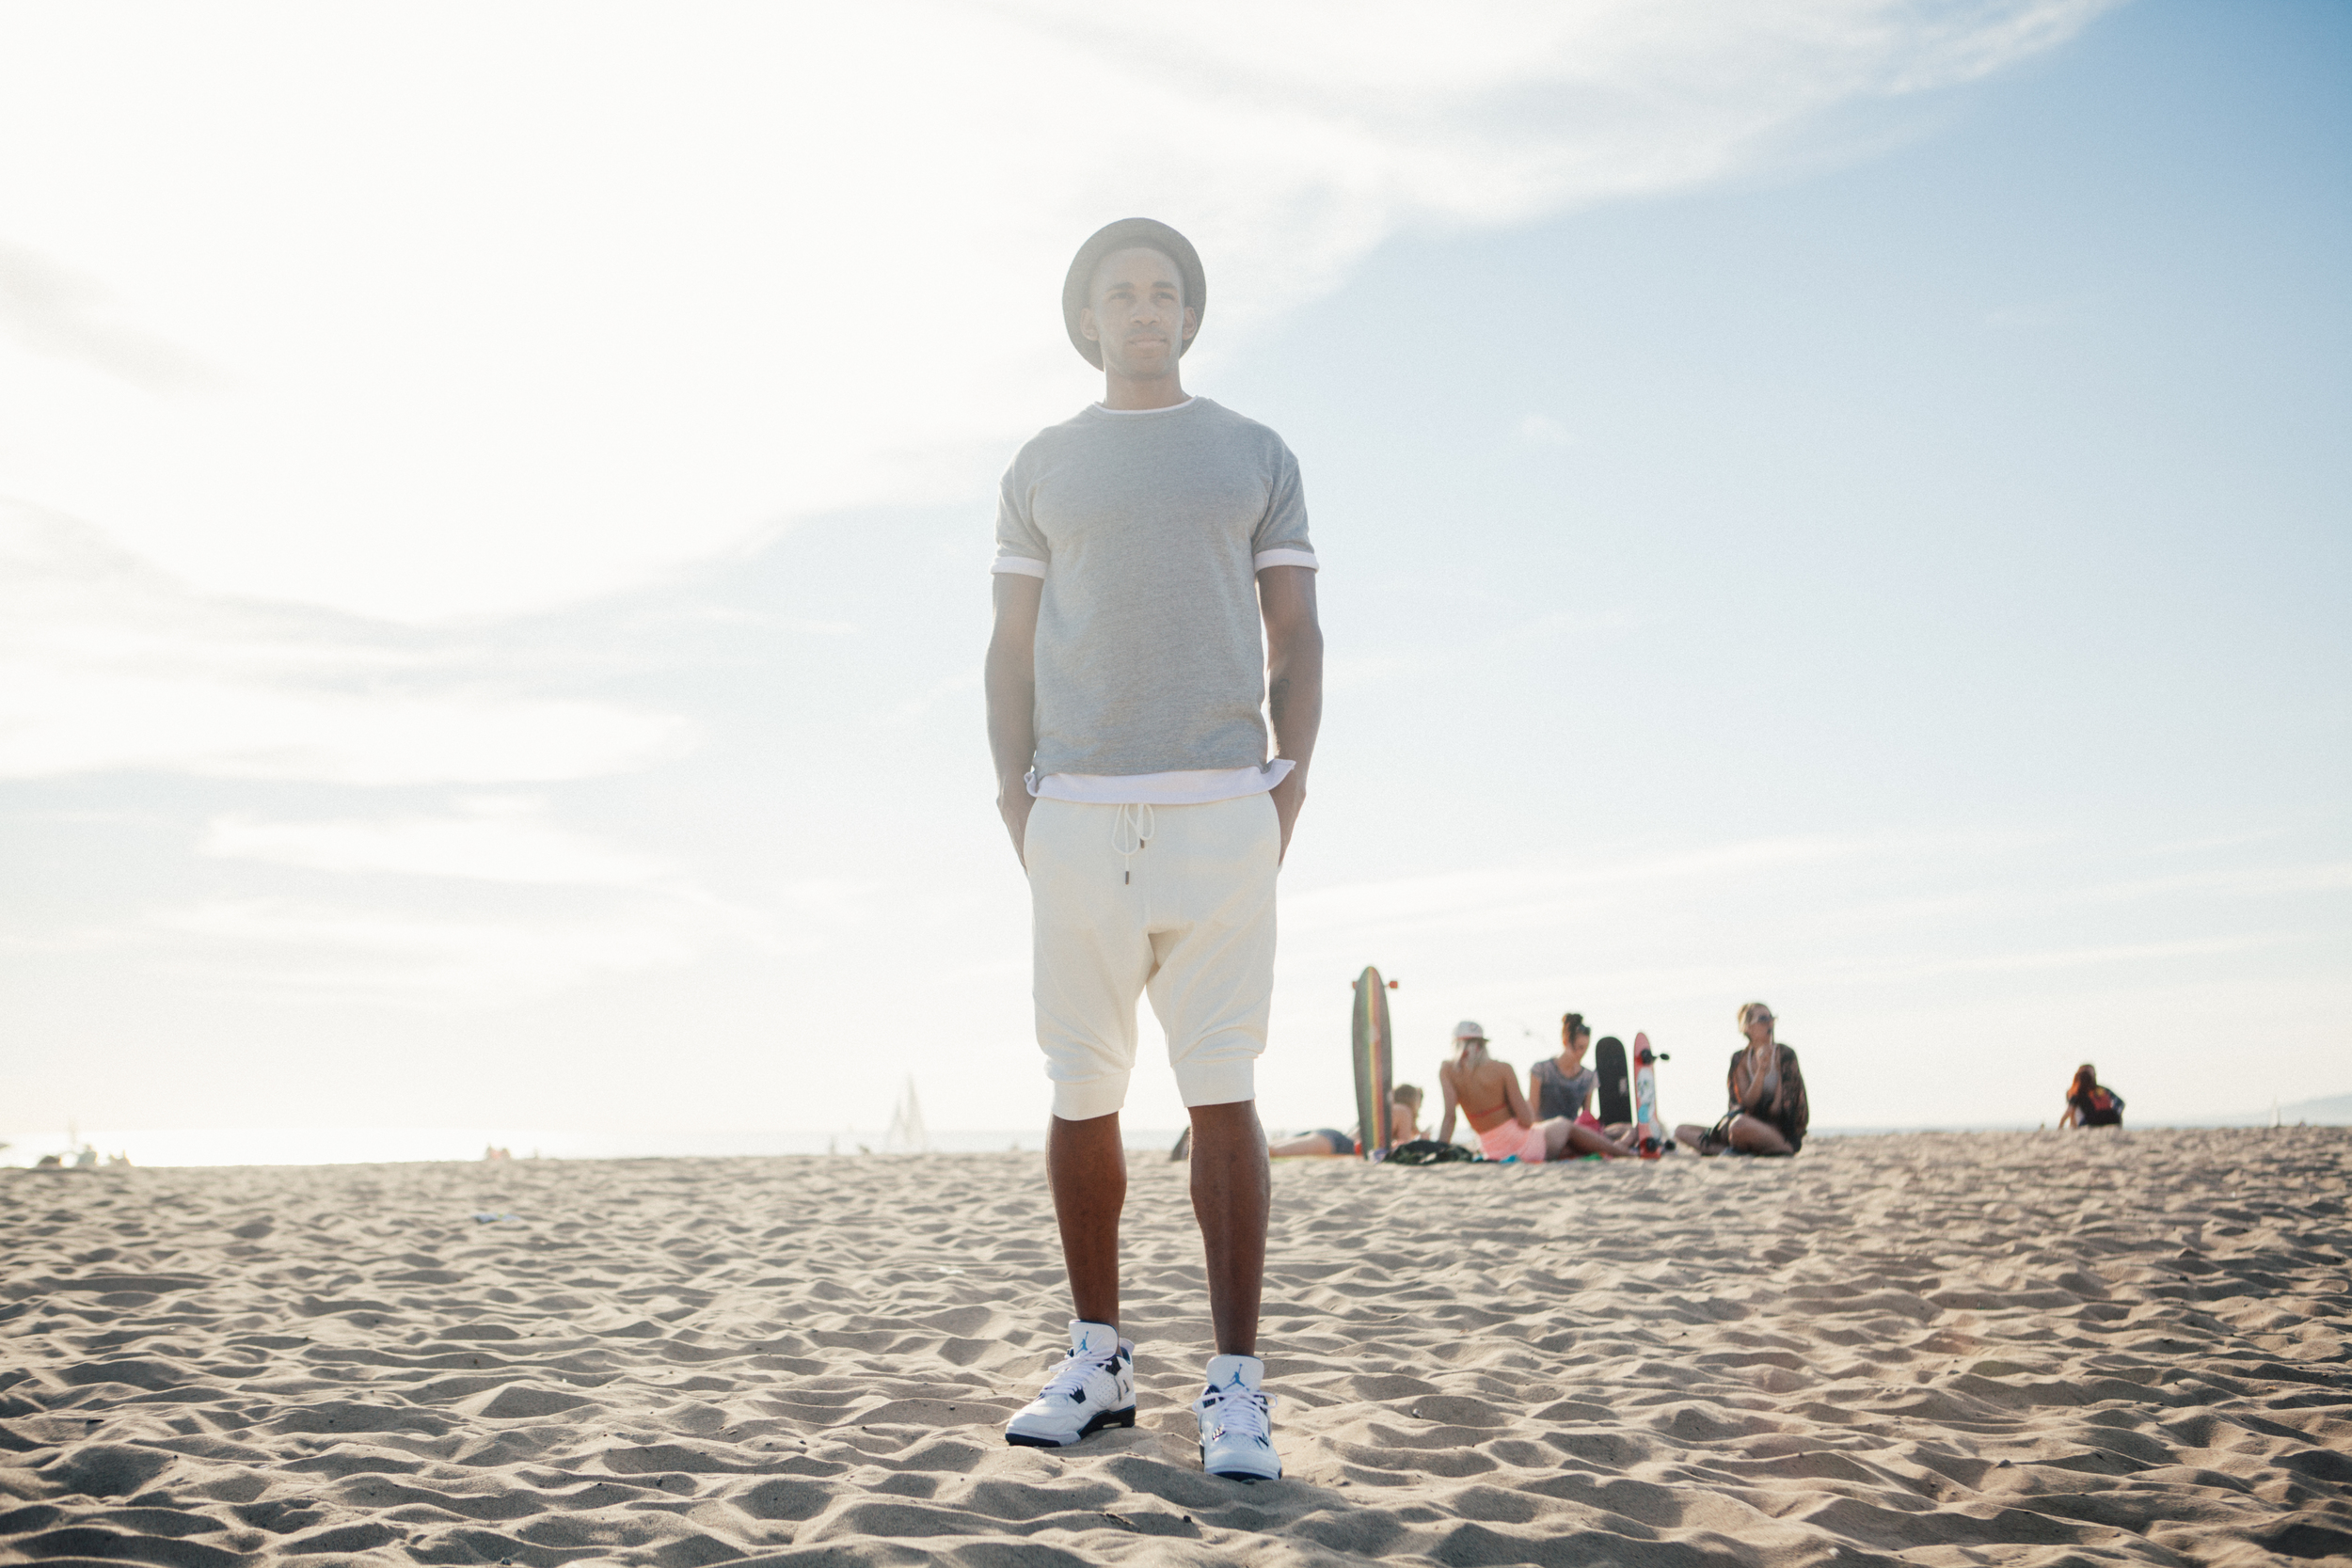 Nike Jordan Lifestlye Photography Session Venice Beach with Gary LaVard